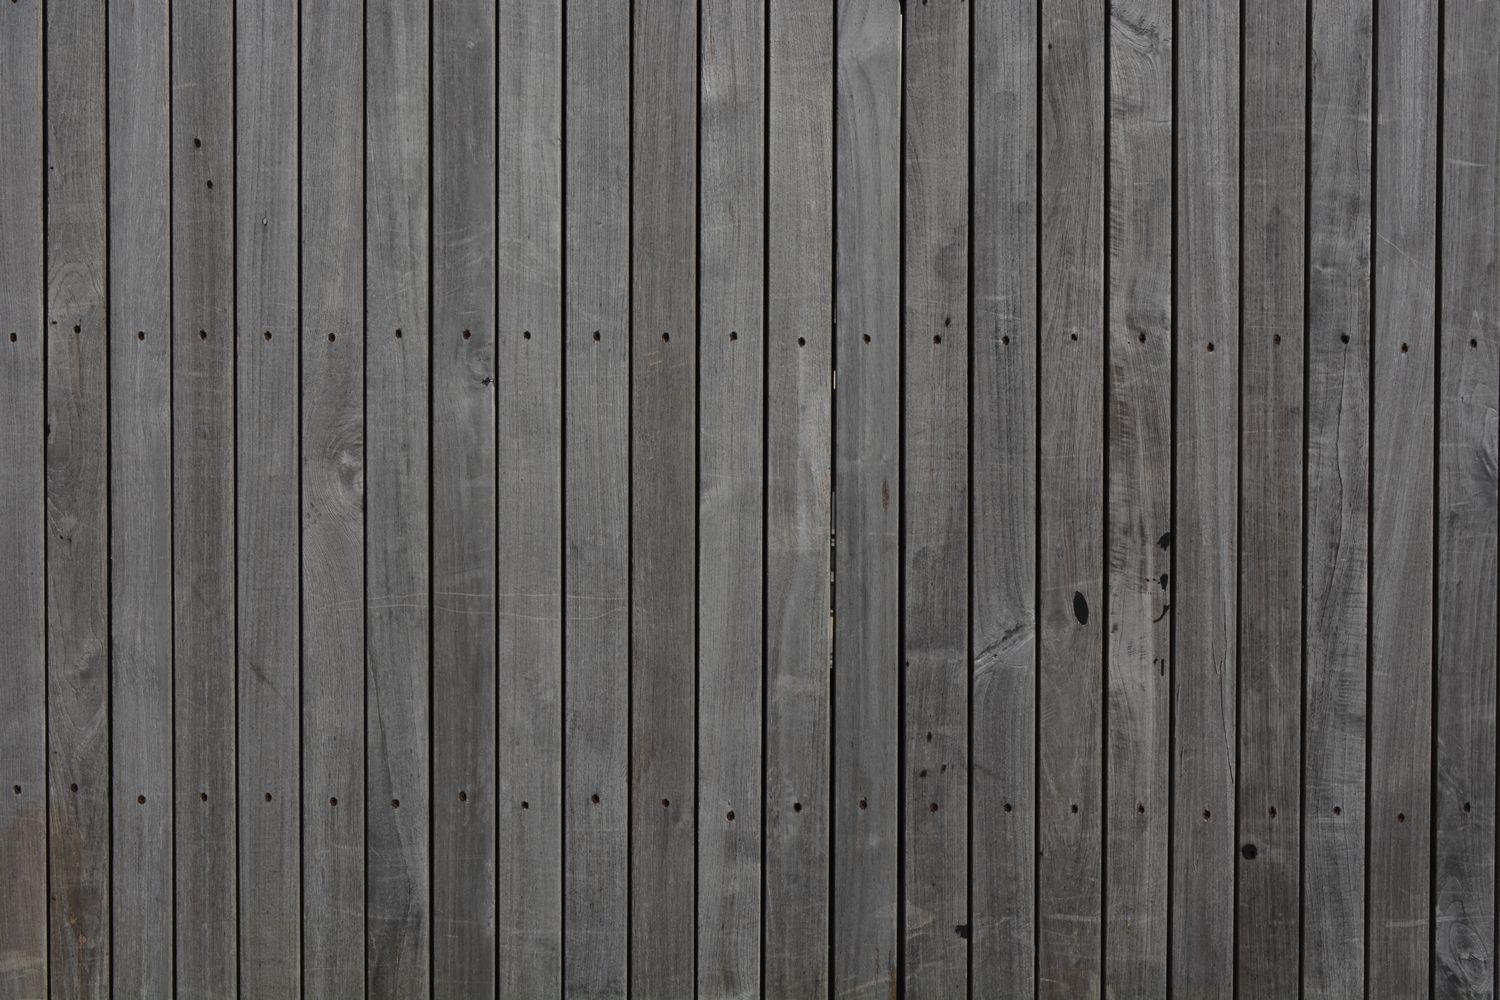 Black Wood Planks ~ Dark gray deck texture google 검색 images